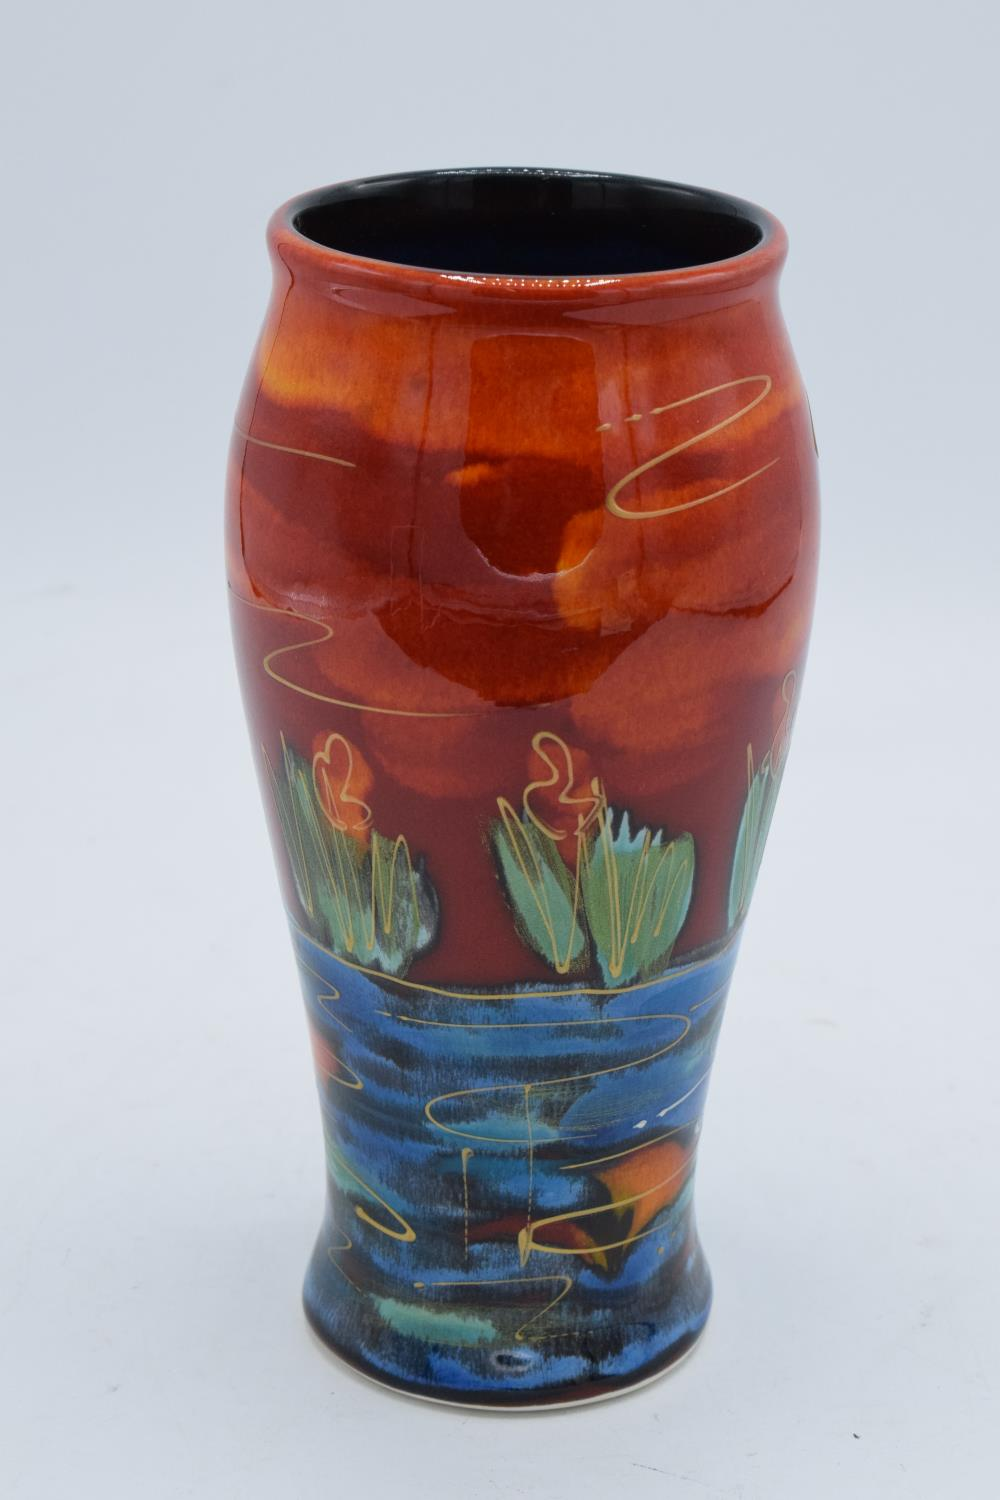 Anita Harris Art pottery vase with a swan scene. In good condition with no obvious damage or - Image 2 of 3